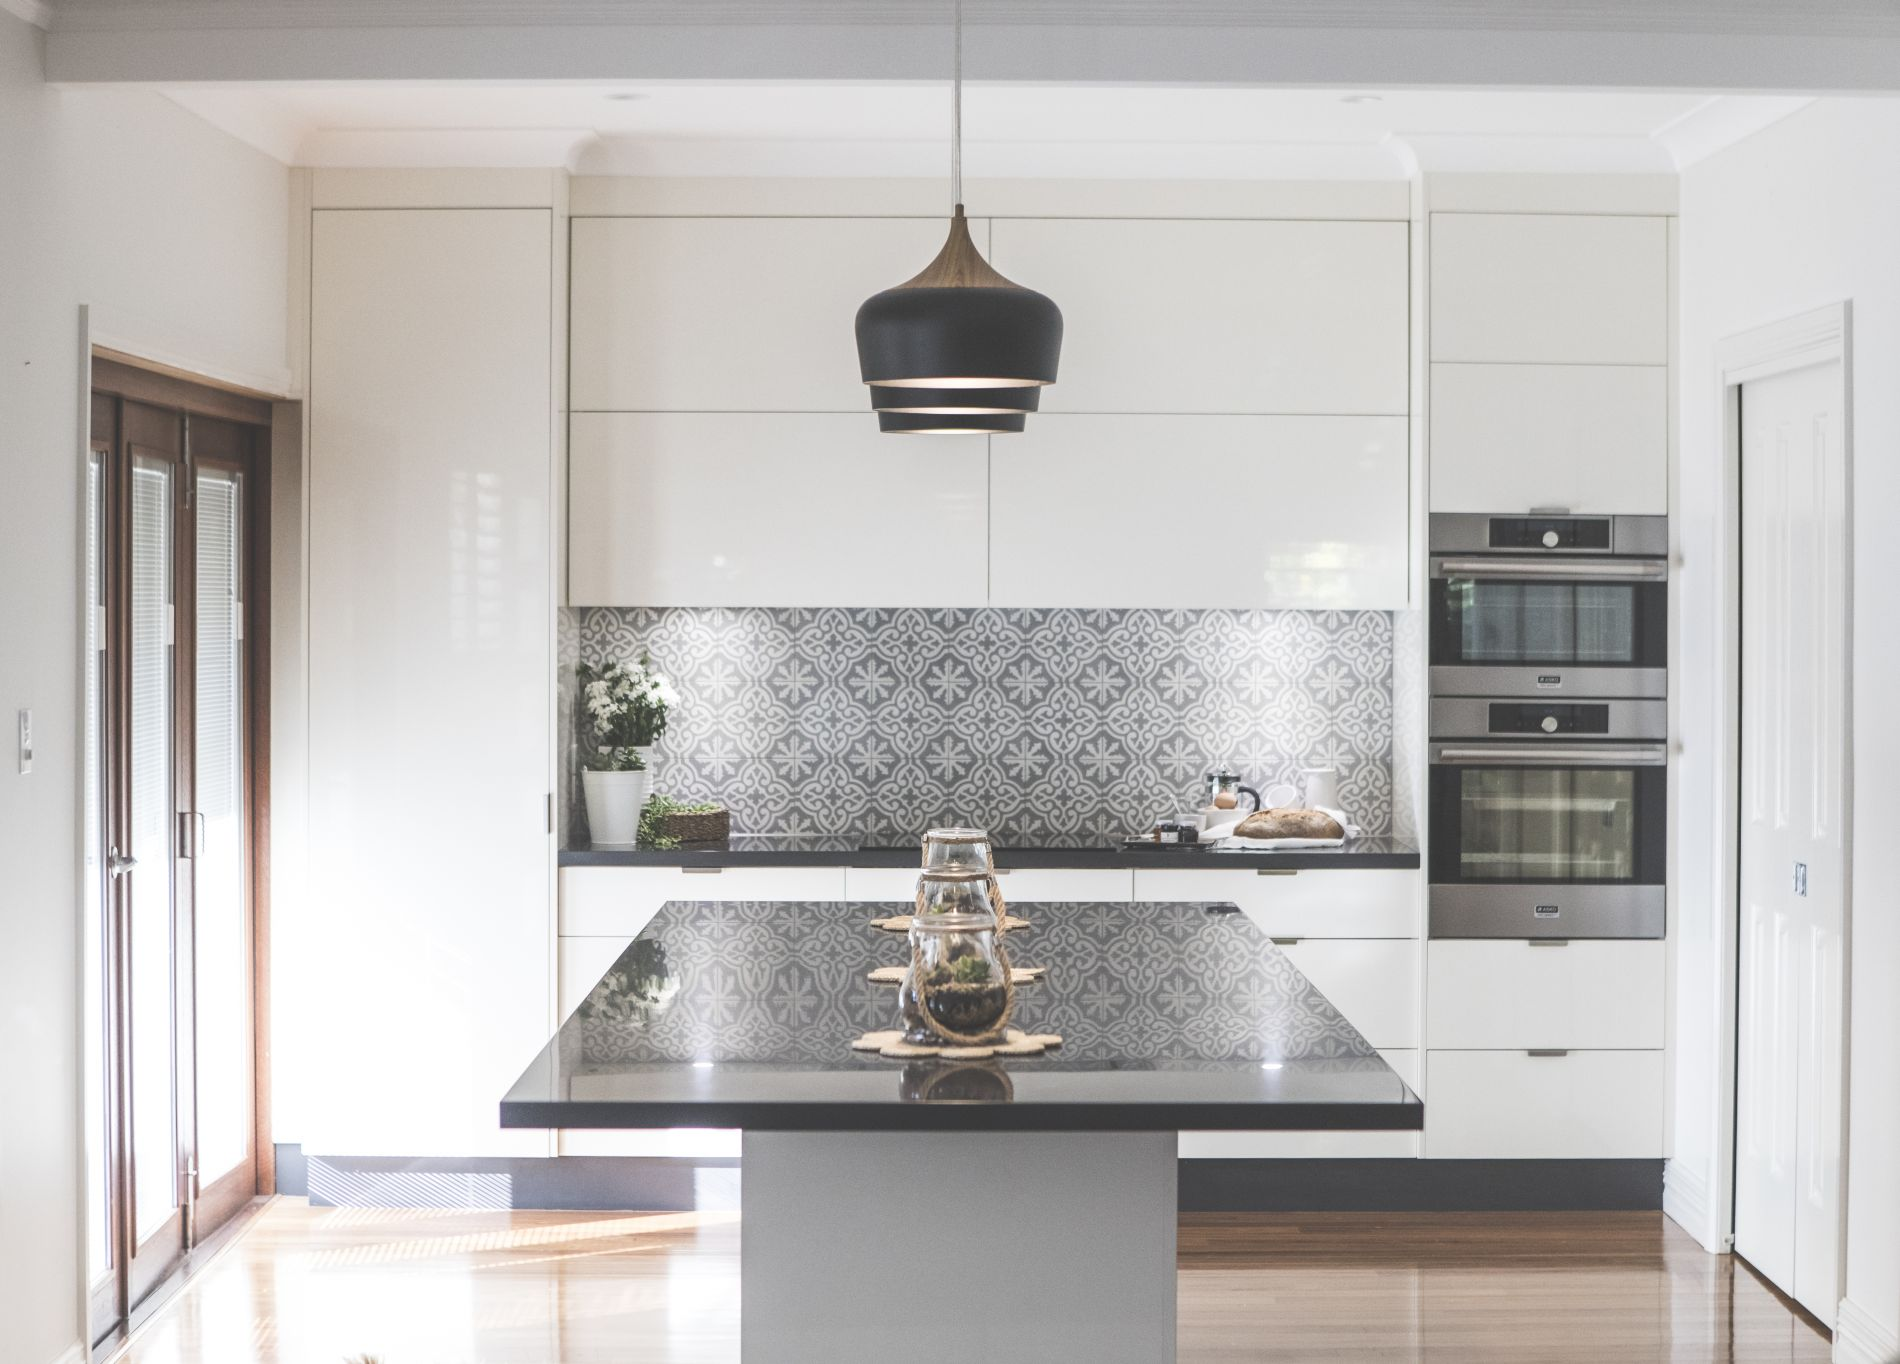 Kitchen corian island with centerpieces and patterned backsplash stylish contemporary lighting at Diggers Beach Cottage